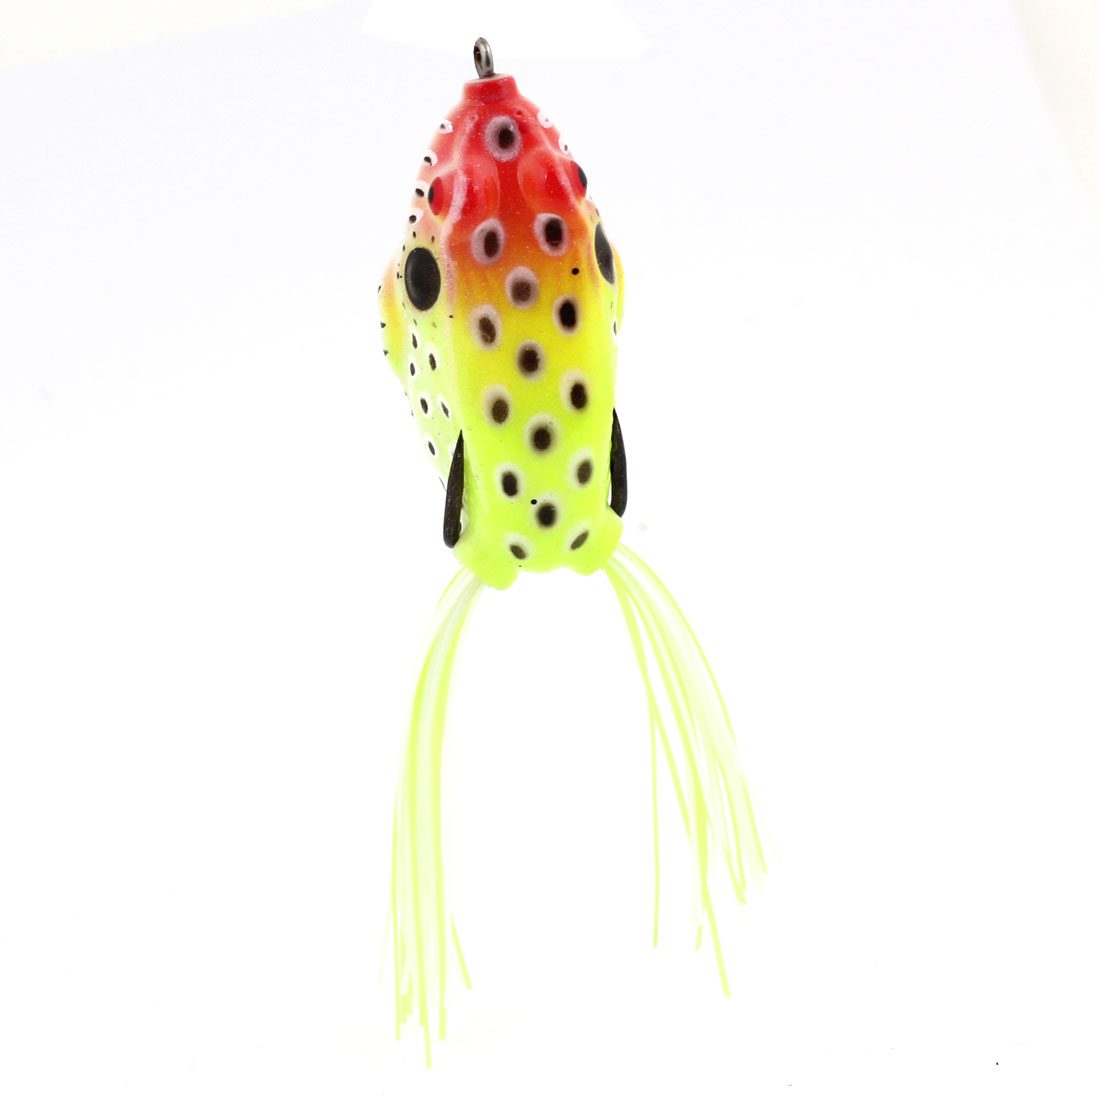 Yellowgreen Red Soft Silicone Frog Shaped Fishing Baits w Metal Hook